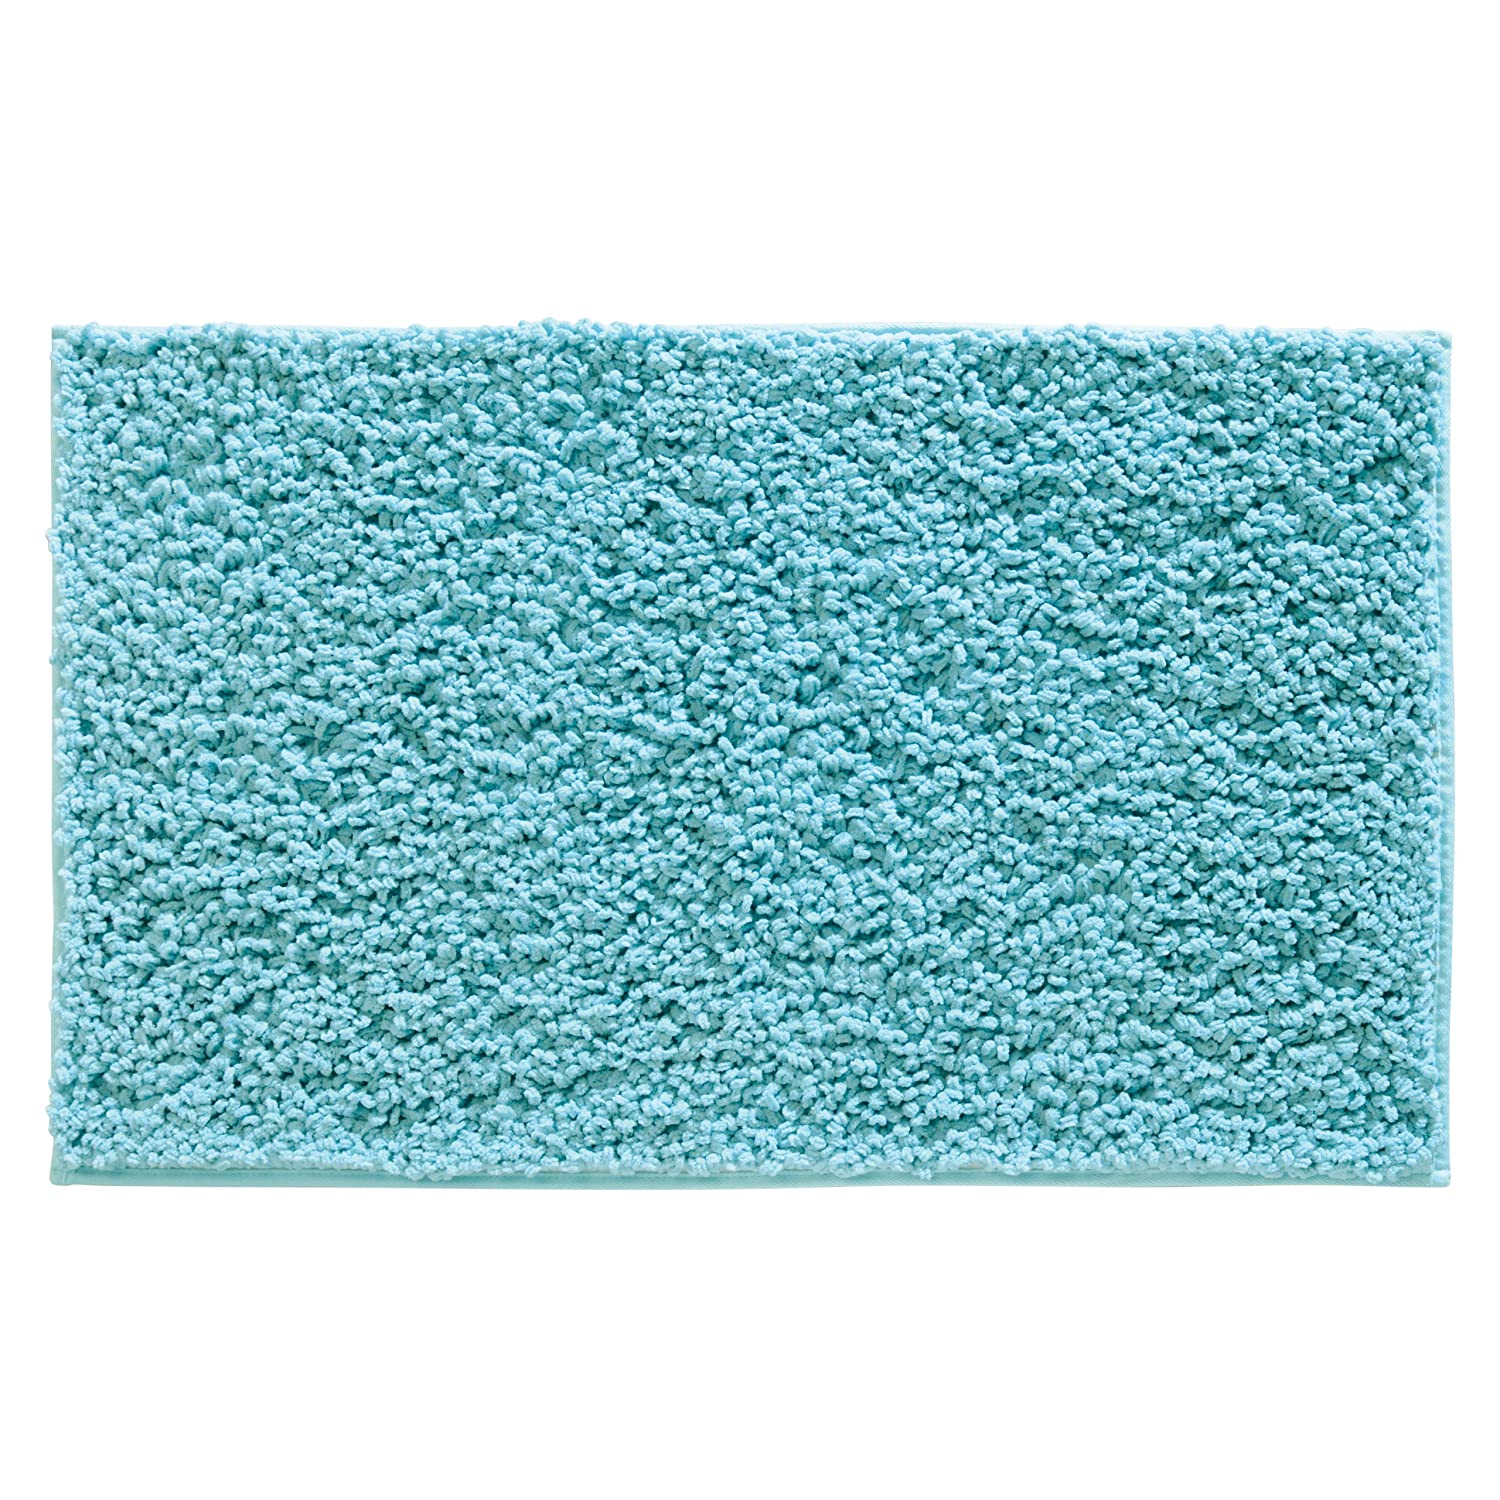 Amazon.com: InterDesign Microfiber Fuzi Bathroom Shower Accent Rug, 34 x  21, Aqua: Kitchen u0026 Dining